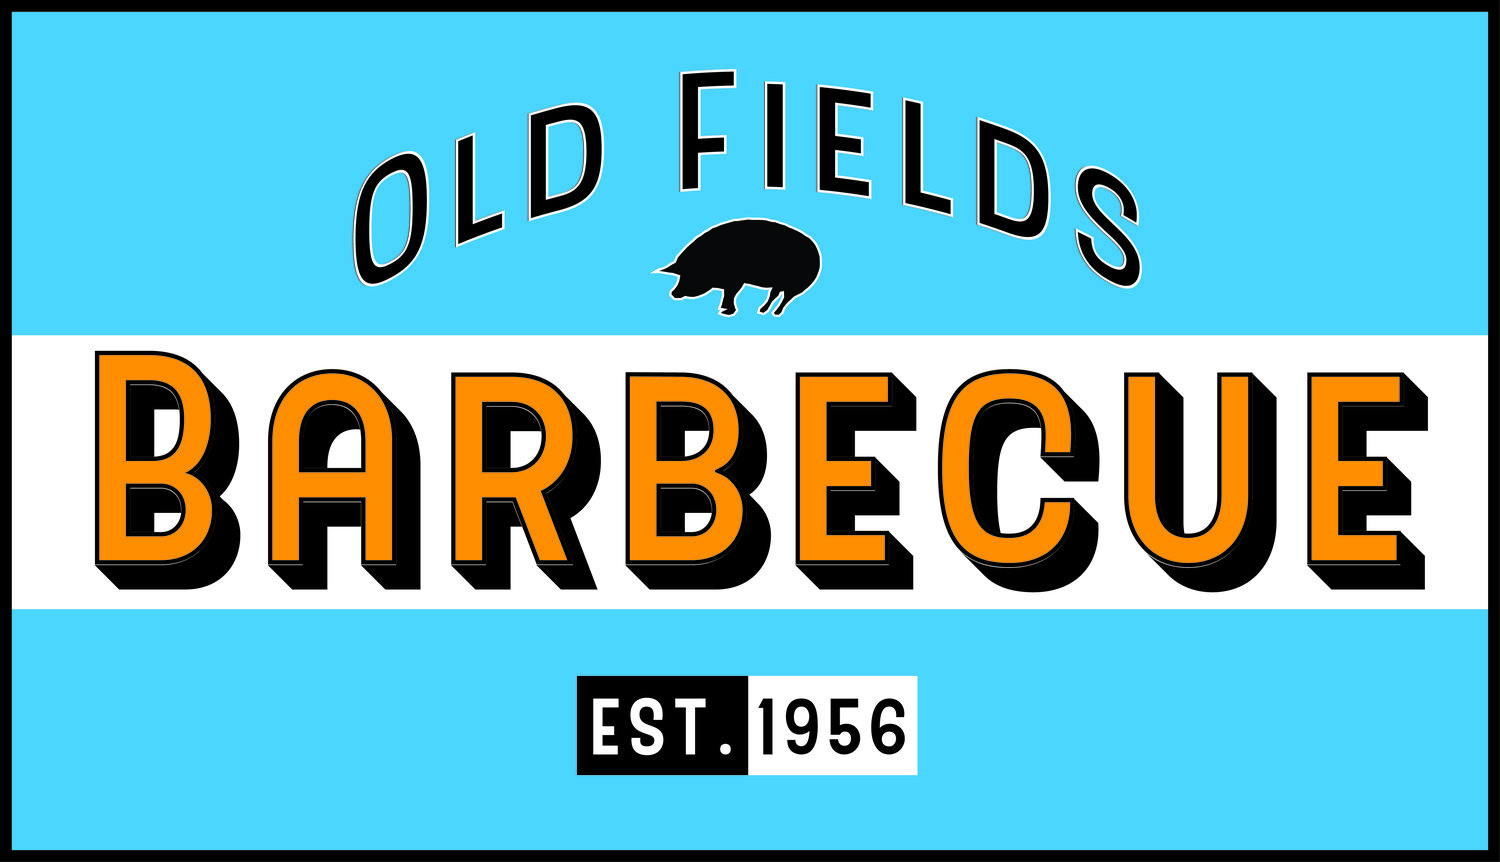 Old Fields Barbecue